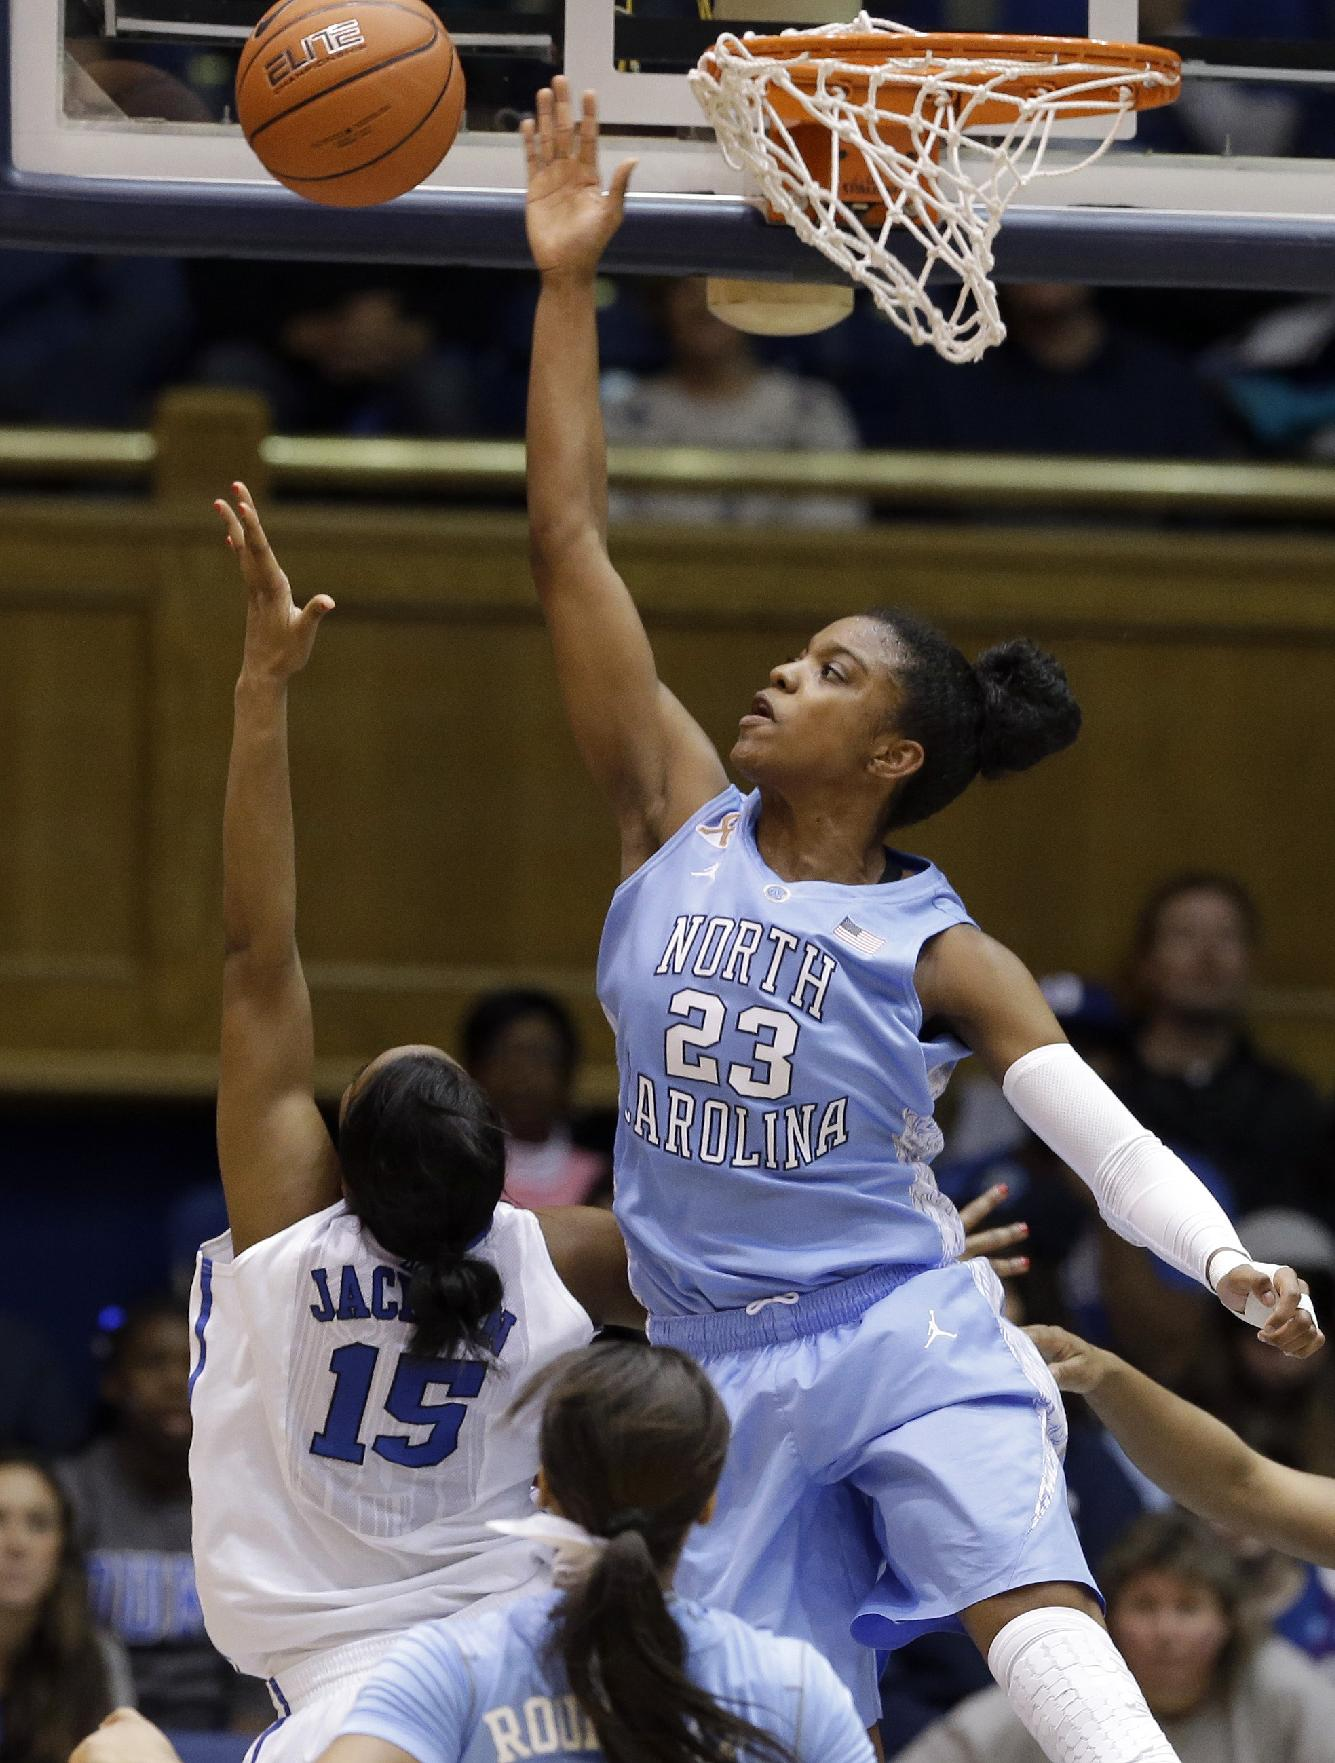 North Carolina's Diamond DeShields (23) blocks Duke's Richa Jackson (15) during the second half of an NCAA college basketball game in Durham, N.C., Monday, Feb. 10, 2014. North Carolina won 89-78